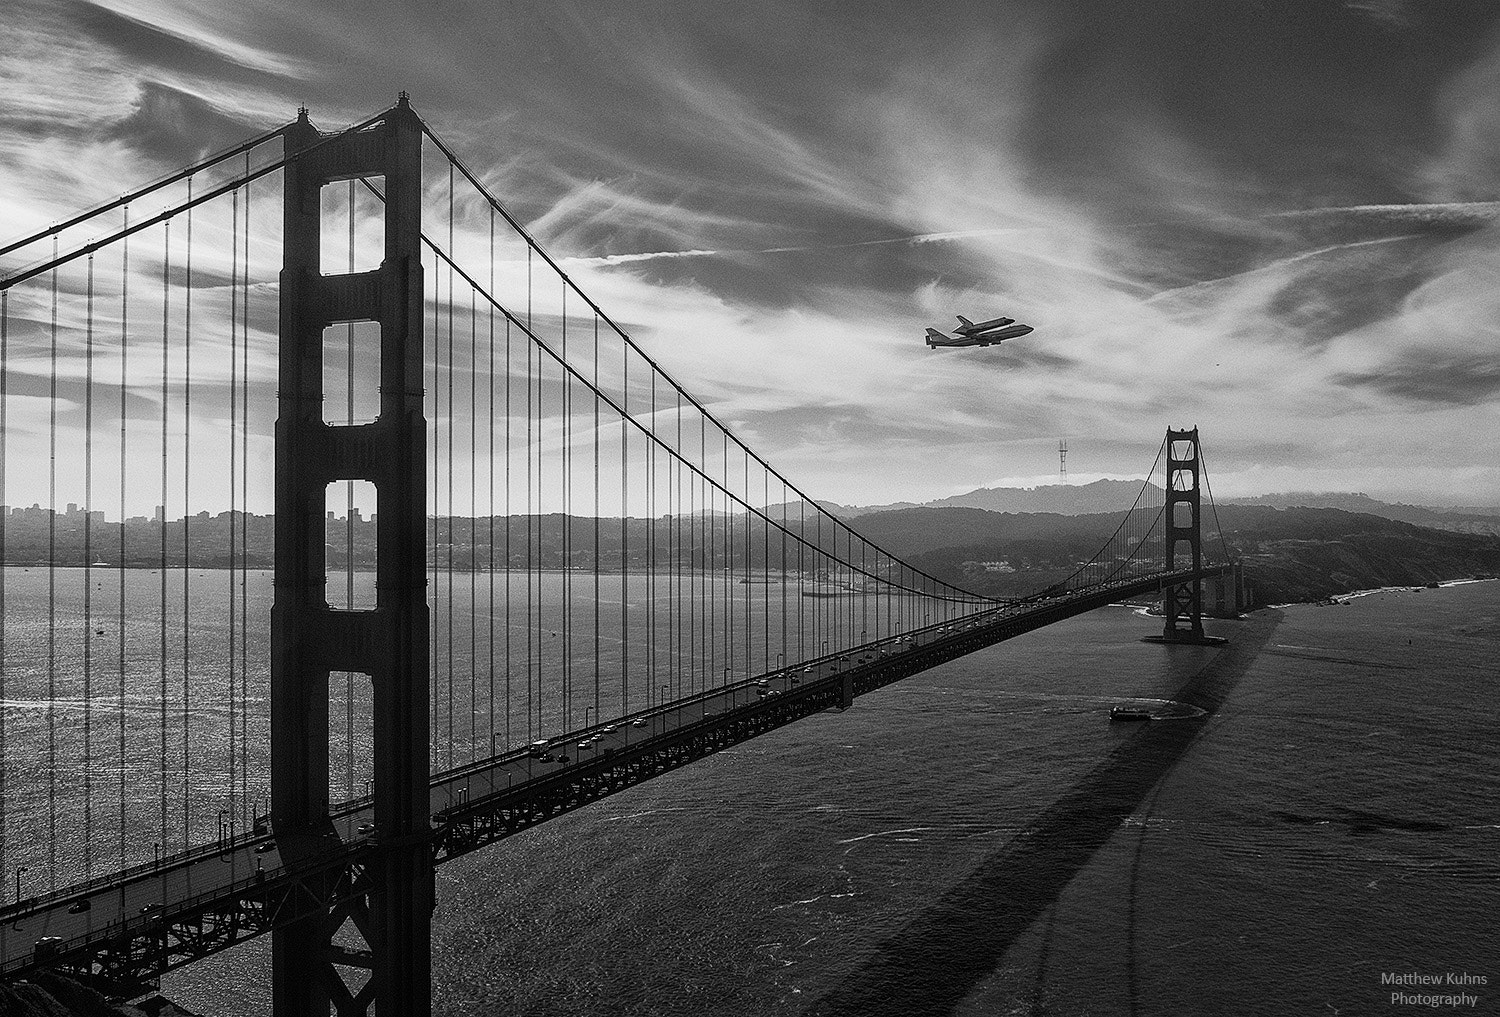 Photograph Endeavour by Matthew Kuhns on 500px